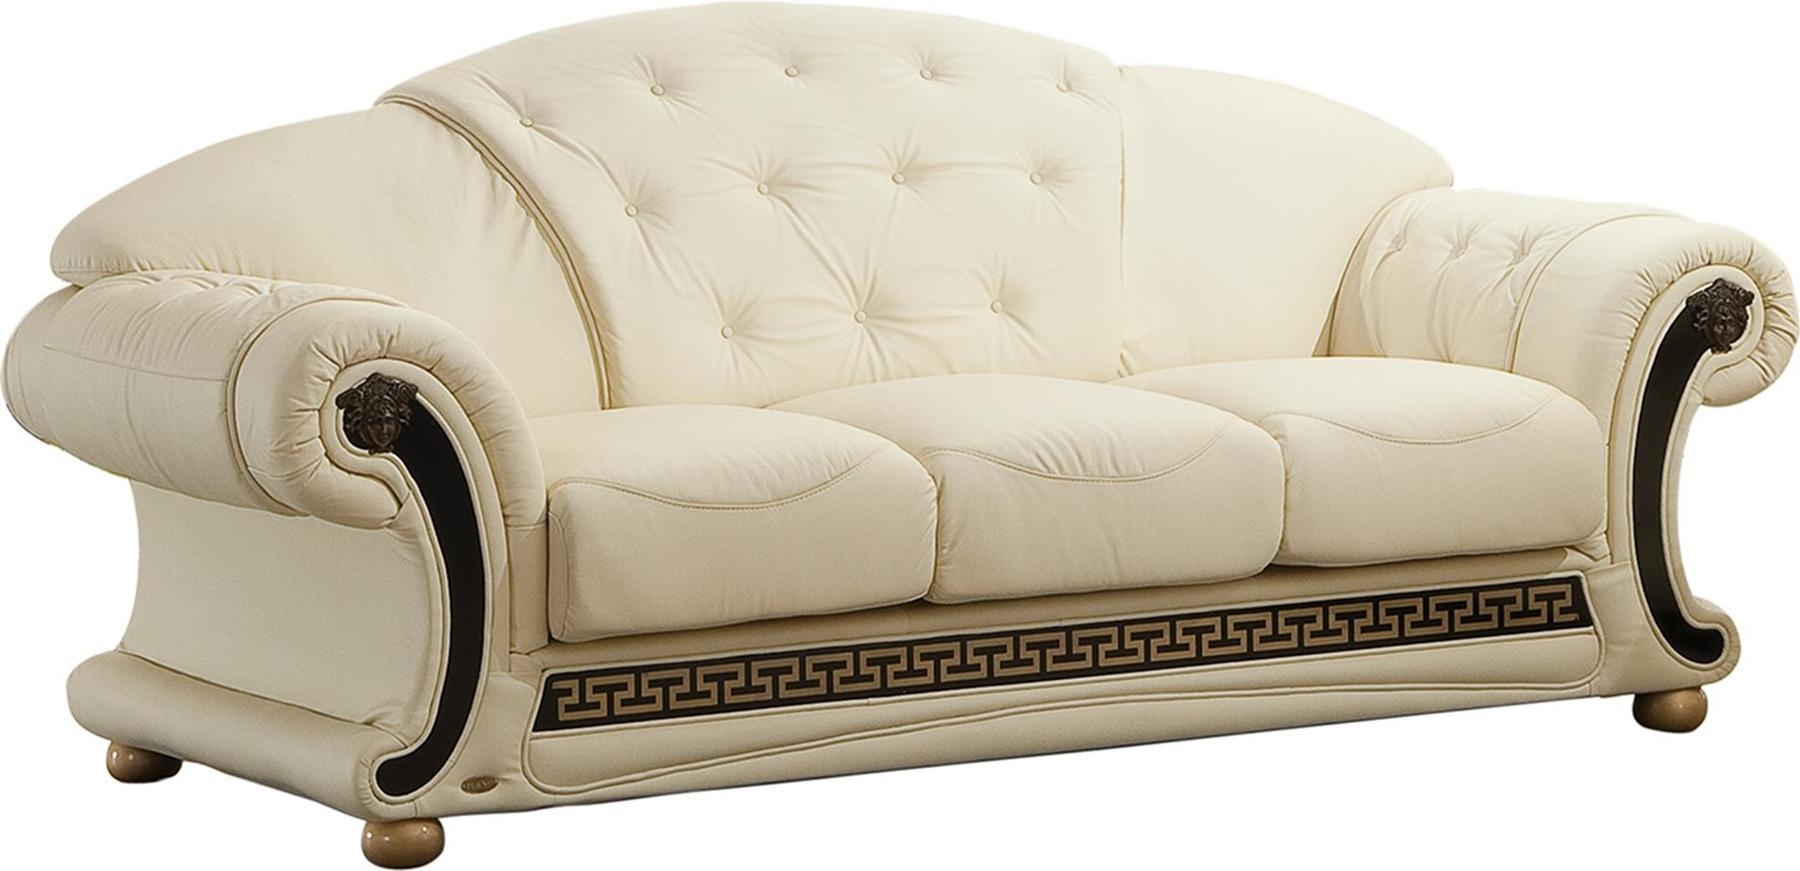 Versace Ivory Sofa Versace Esf Furniture Leather Sofas At Comfyco Intended For Ivory Leather Sofas (Image 18 of 20)